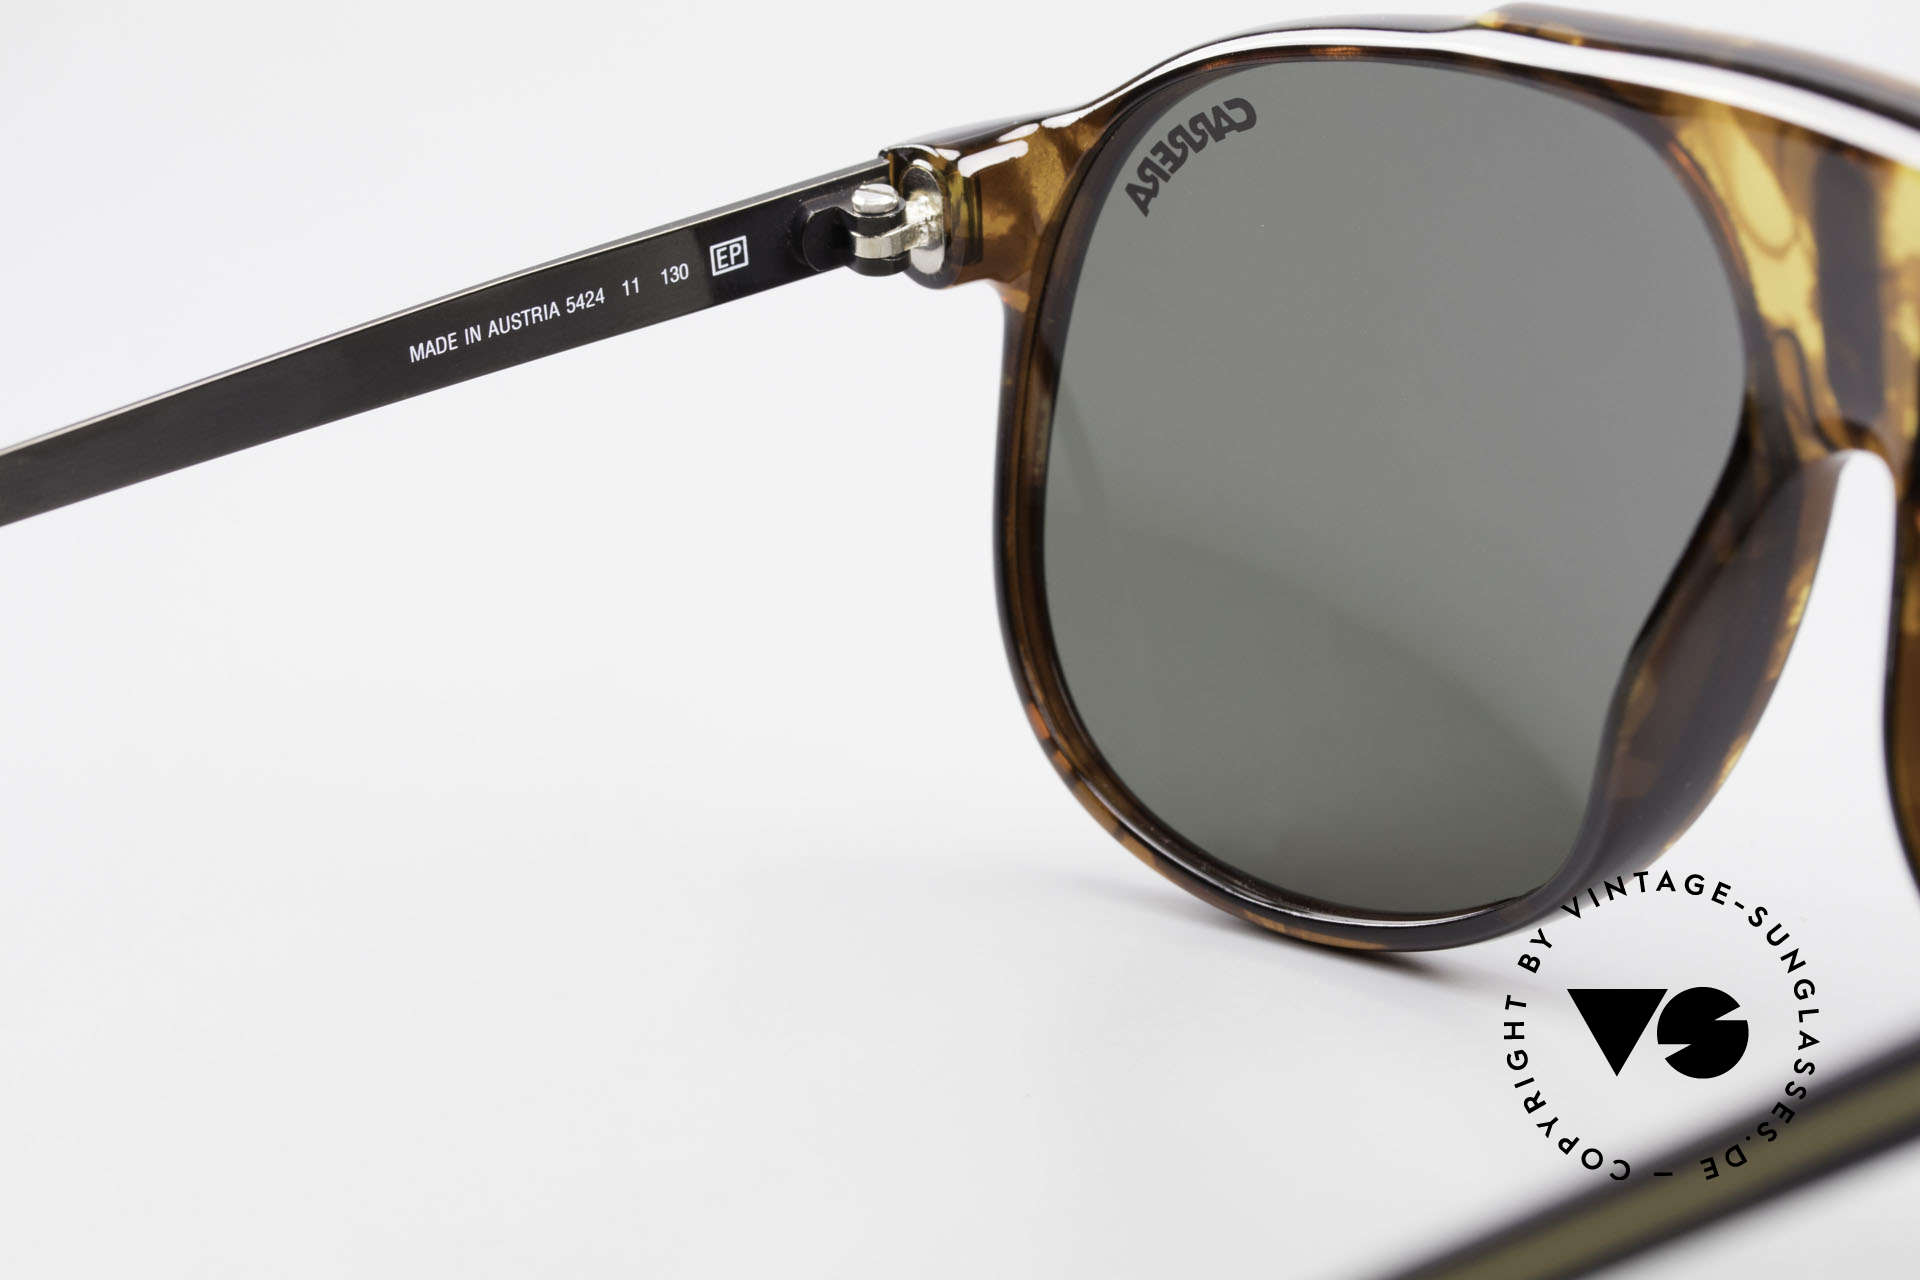 Carrera 5424 80's Aviator Sports Sunglasses, new old stock (like all our VINTAGE Carrera shades), Made for Men